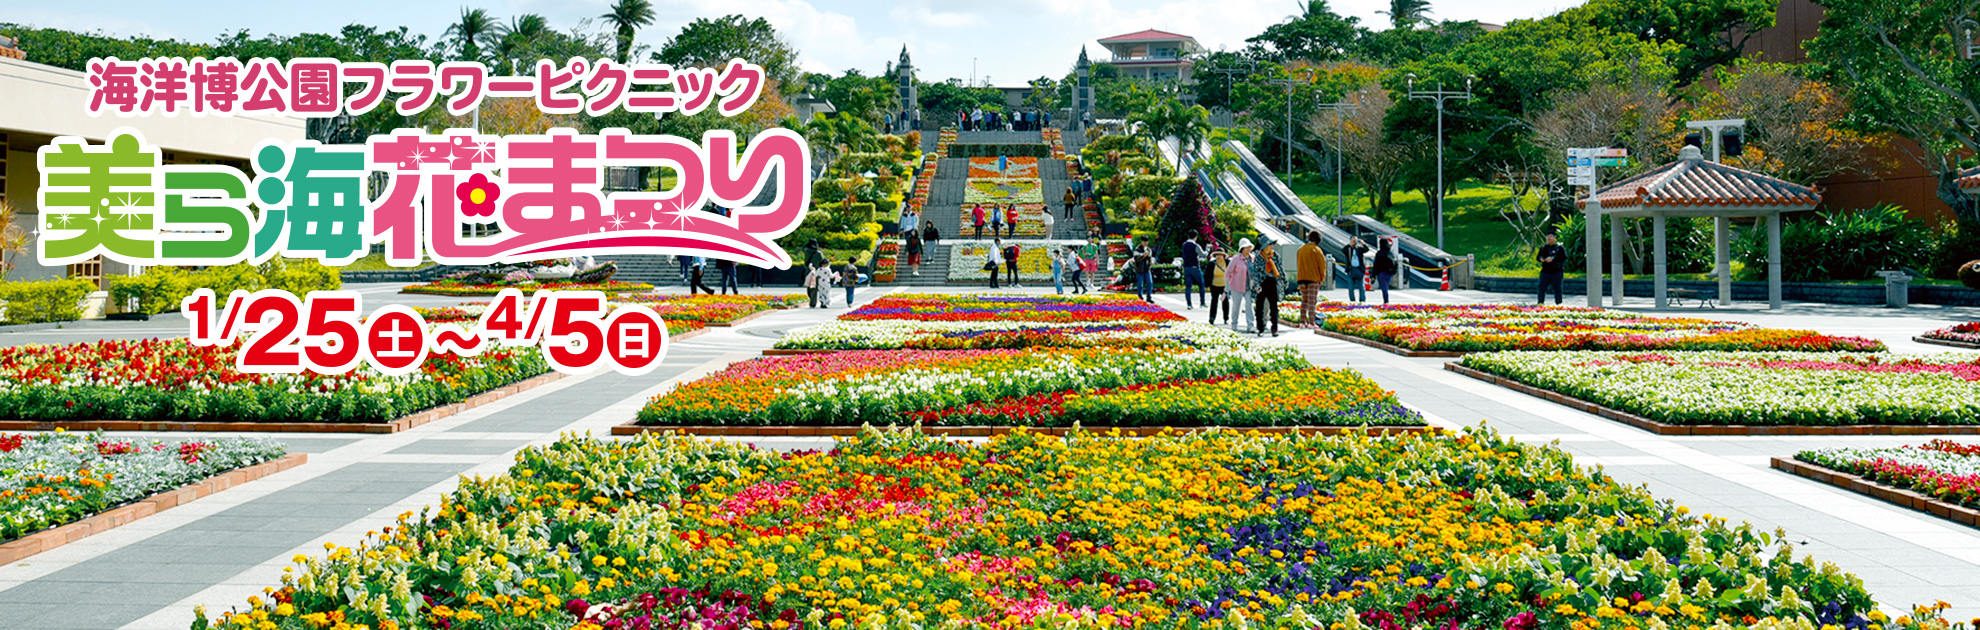 The Ocean Expo Park 15th beauty and others Sea flower Festival holding!